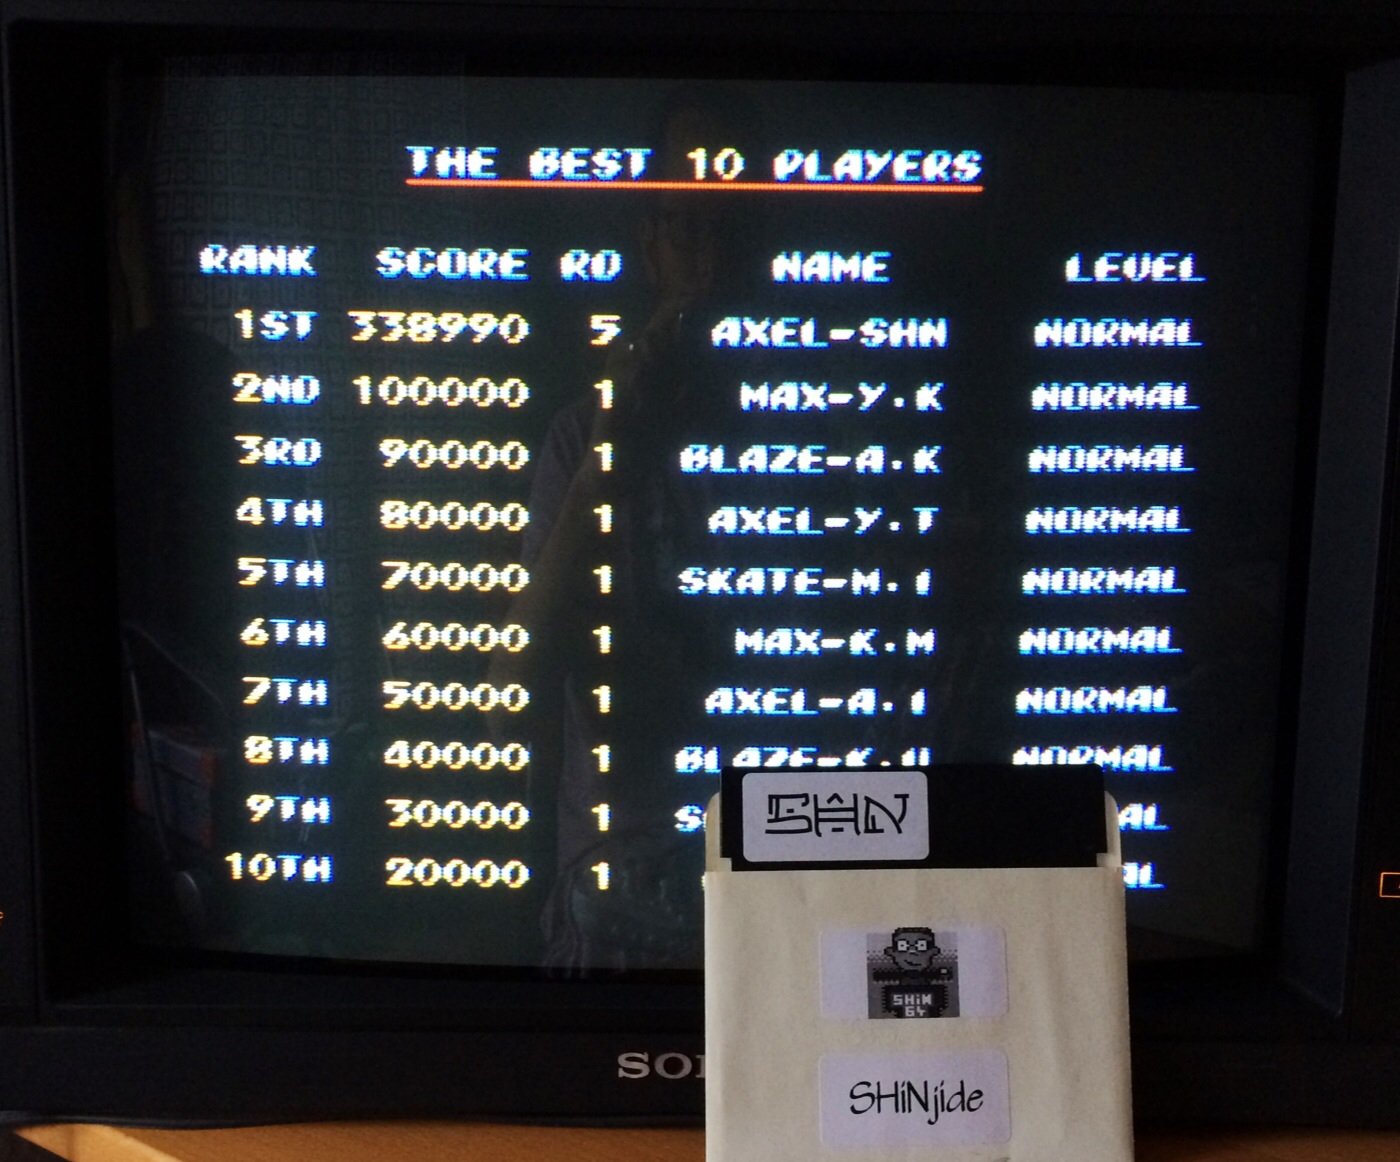 Streets of Rage 2: Normal 338,990 points